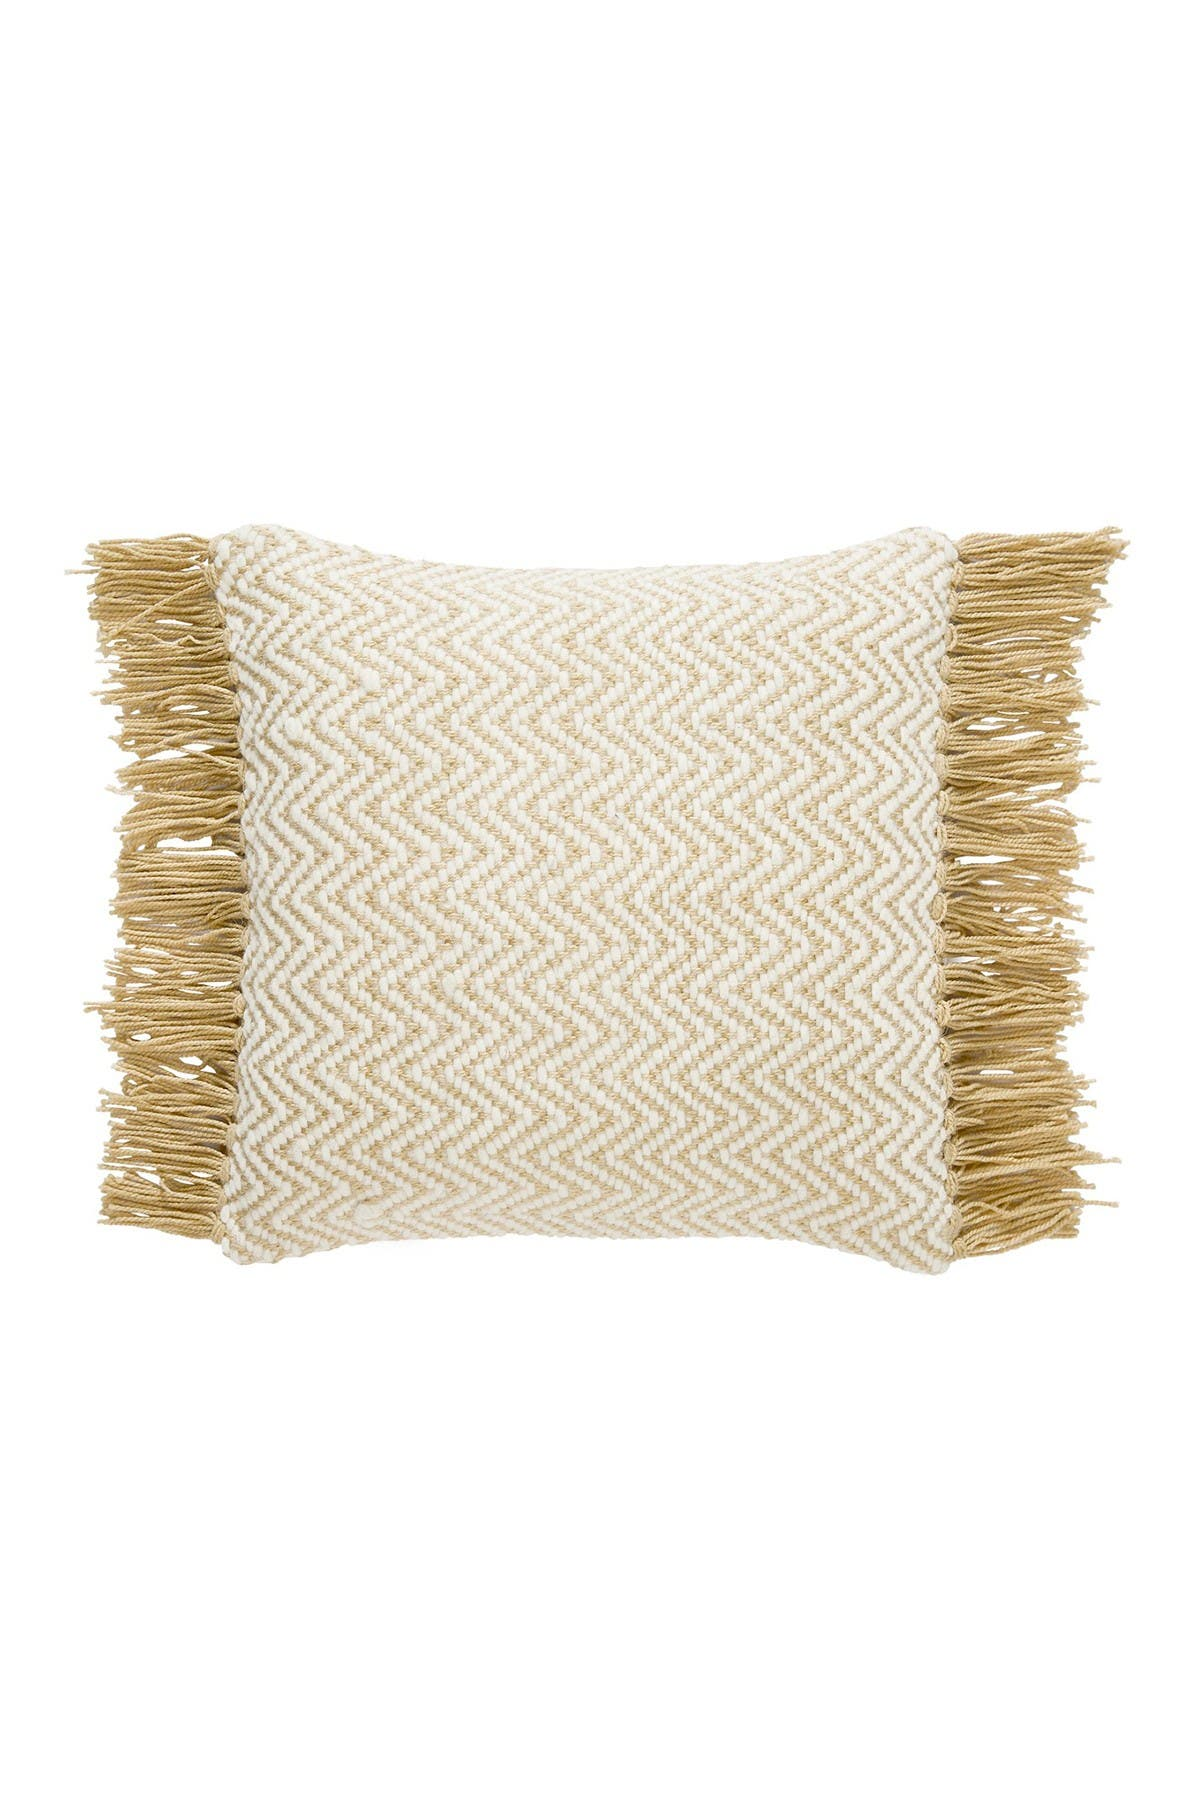 Image of Modern Threads Lucca Decorative Pillow Cover